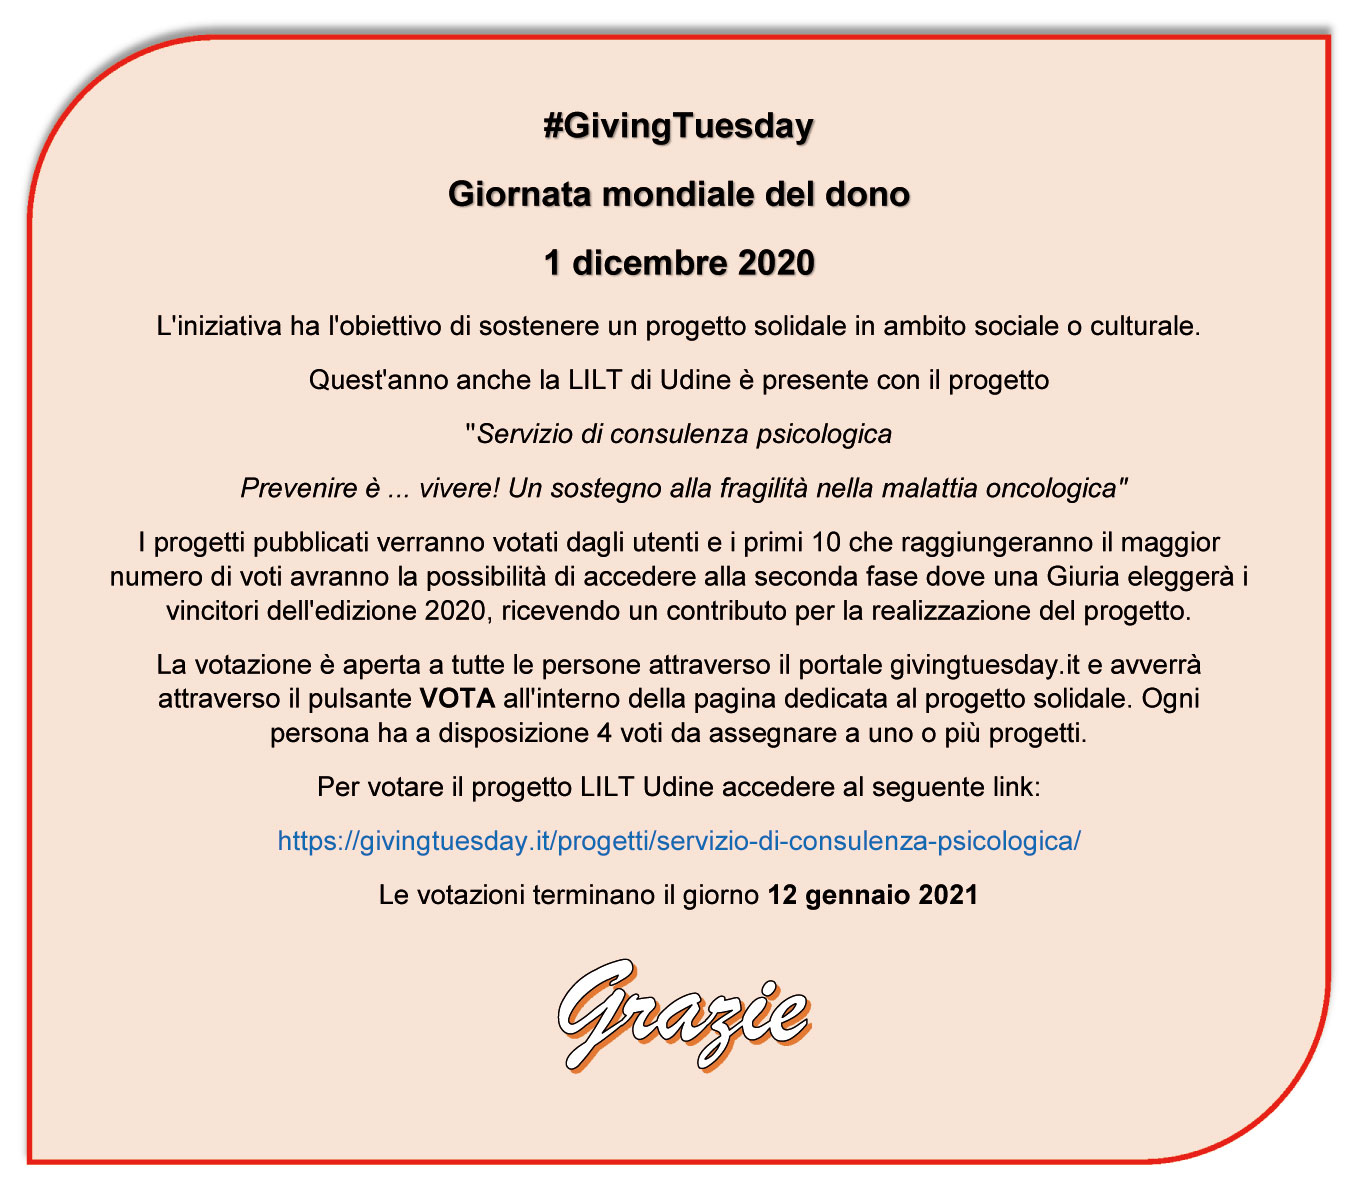 GivingTuesday sito